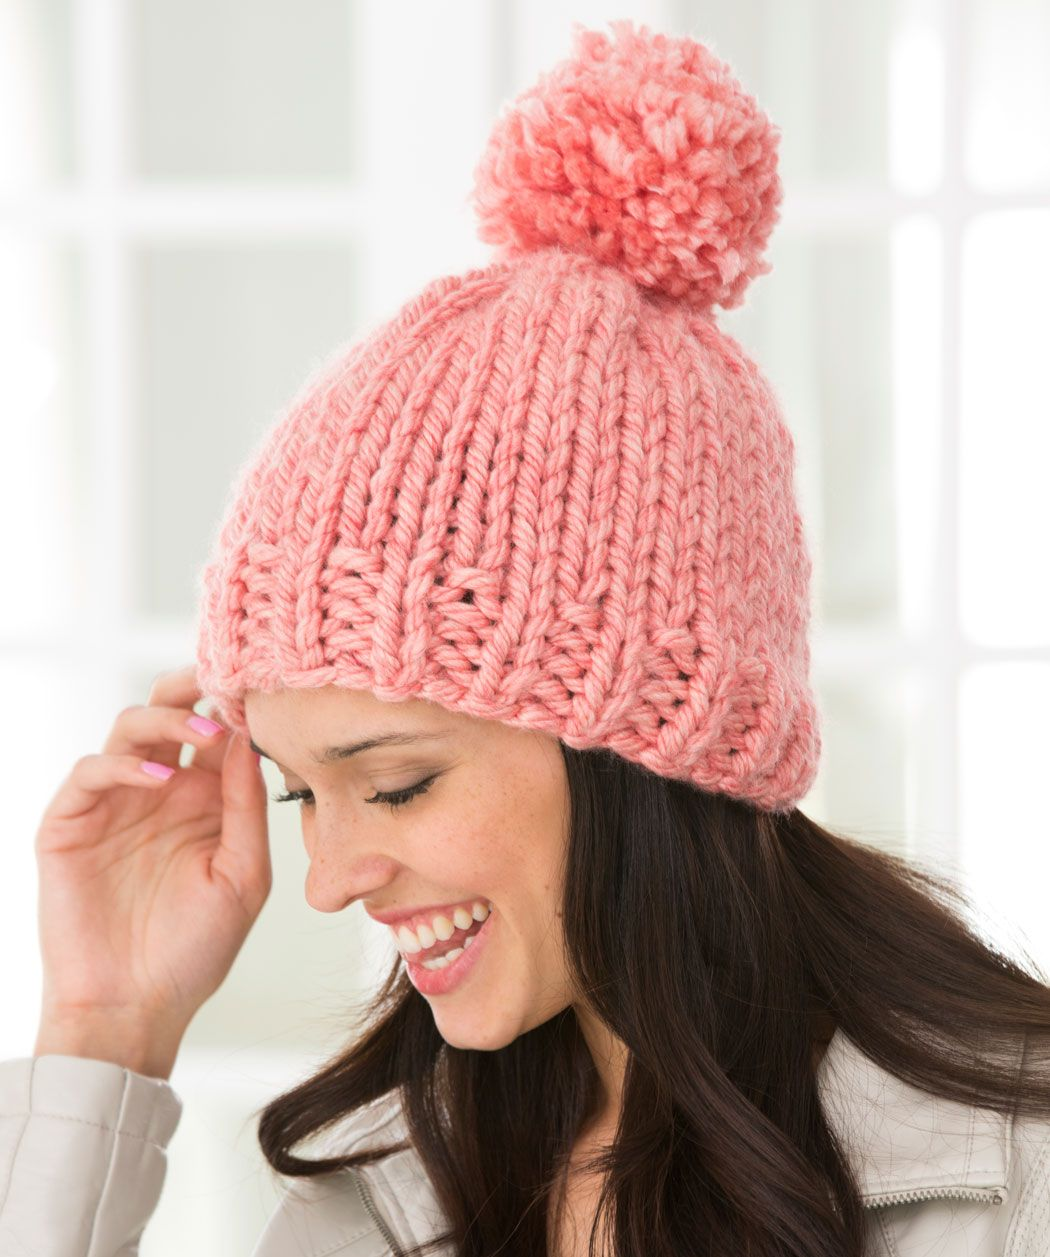 Create Some Charm Hat Knitting Pattern | Knitting | Pinterest ...